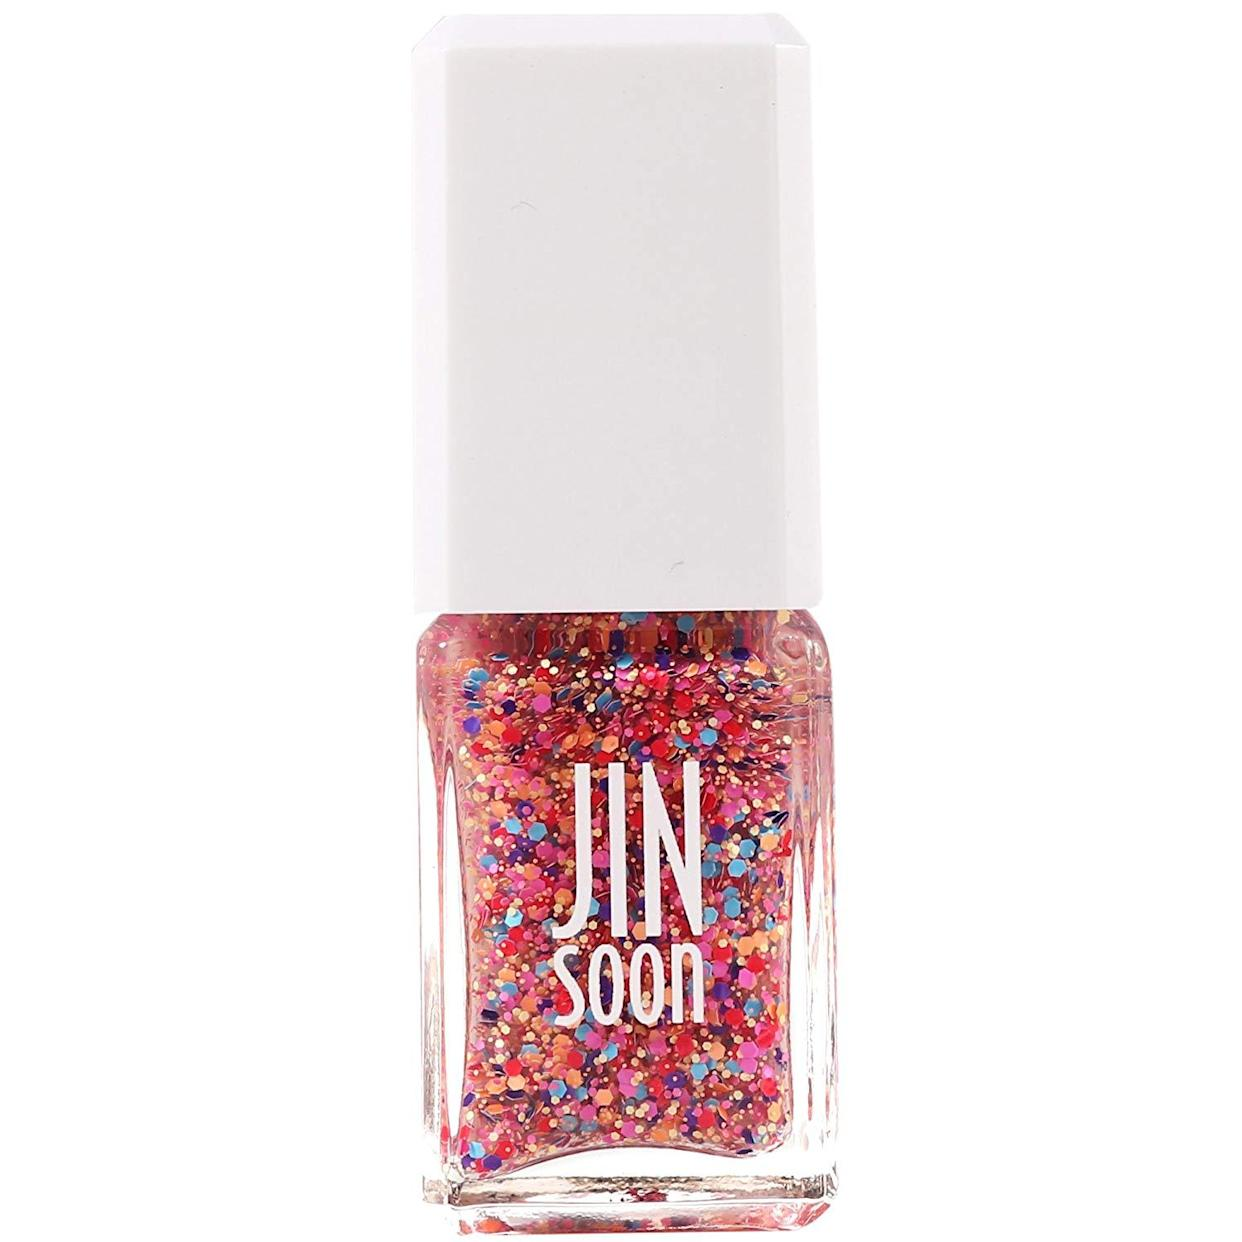 """<h3>JINsoon Nail Polish in Fab<br></h3> <br>The best part about swiping on a multi-colored rainbow glitter polish, like this funfetti shade by <a href=""""https://www.refinery29.com/en-us/nyc-best-nail-salons#slide-9"""" rel=""""nofollow noopener"""" target=""""_blank"""" data-ylk=""""slk:Jin Soon"""" class=""""link rapid-noclick-resp"""">Jin Soon</a>, over a naked nail is that it's delightfully <a href=""""https://www.refinery29.com/en-us/top-coat-nail-polish"""" rel=""""nofollow noopener"""" target=""""_blank"""" data-ylk=""""slk:resistant to chipping"""" class=""""link rapid-noclick-resp"""">resistant to chipping</a>.<br><br><strong>JINsoon</strong> Nail Polish in Fab, $, available at <a href=""""https://www.amazon.com/JINsoon-Fab-Nail-Polish-oz/dp/B016NBGIK0"""" rel=""""nofollow noopener"""" target=""""_blank"""" data-ylk=""""slk:Amazon"""" class=""""link rapid-noclick-resp"""">Amazon</a><br>"""